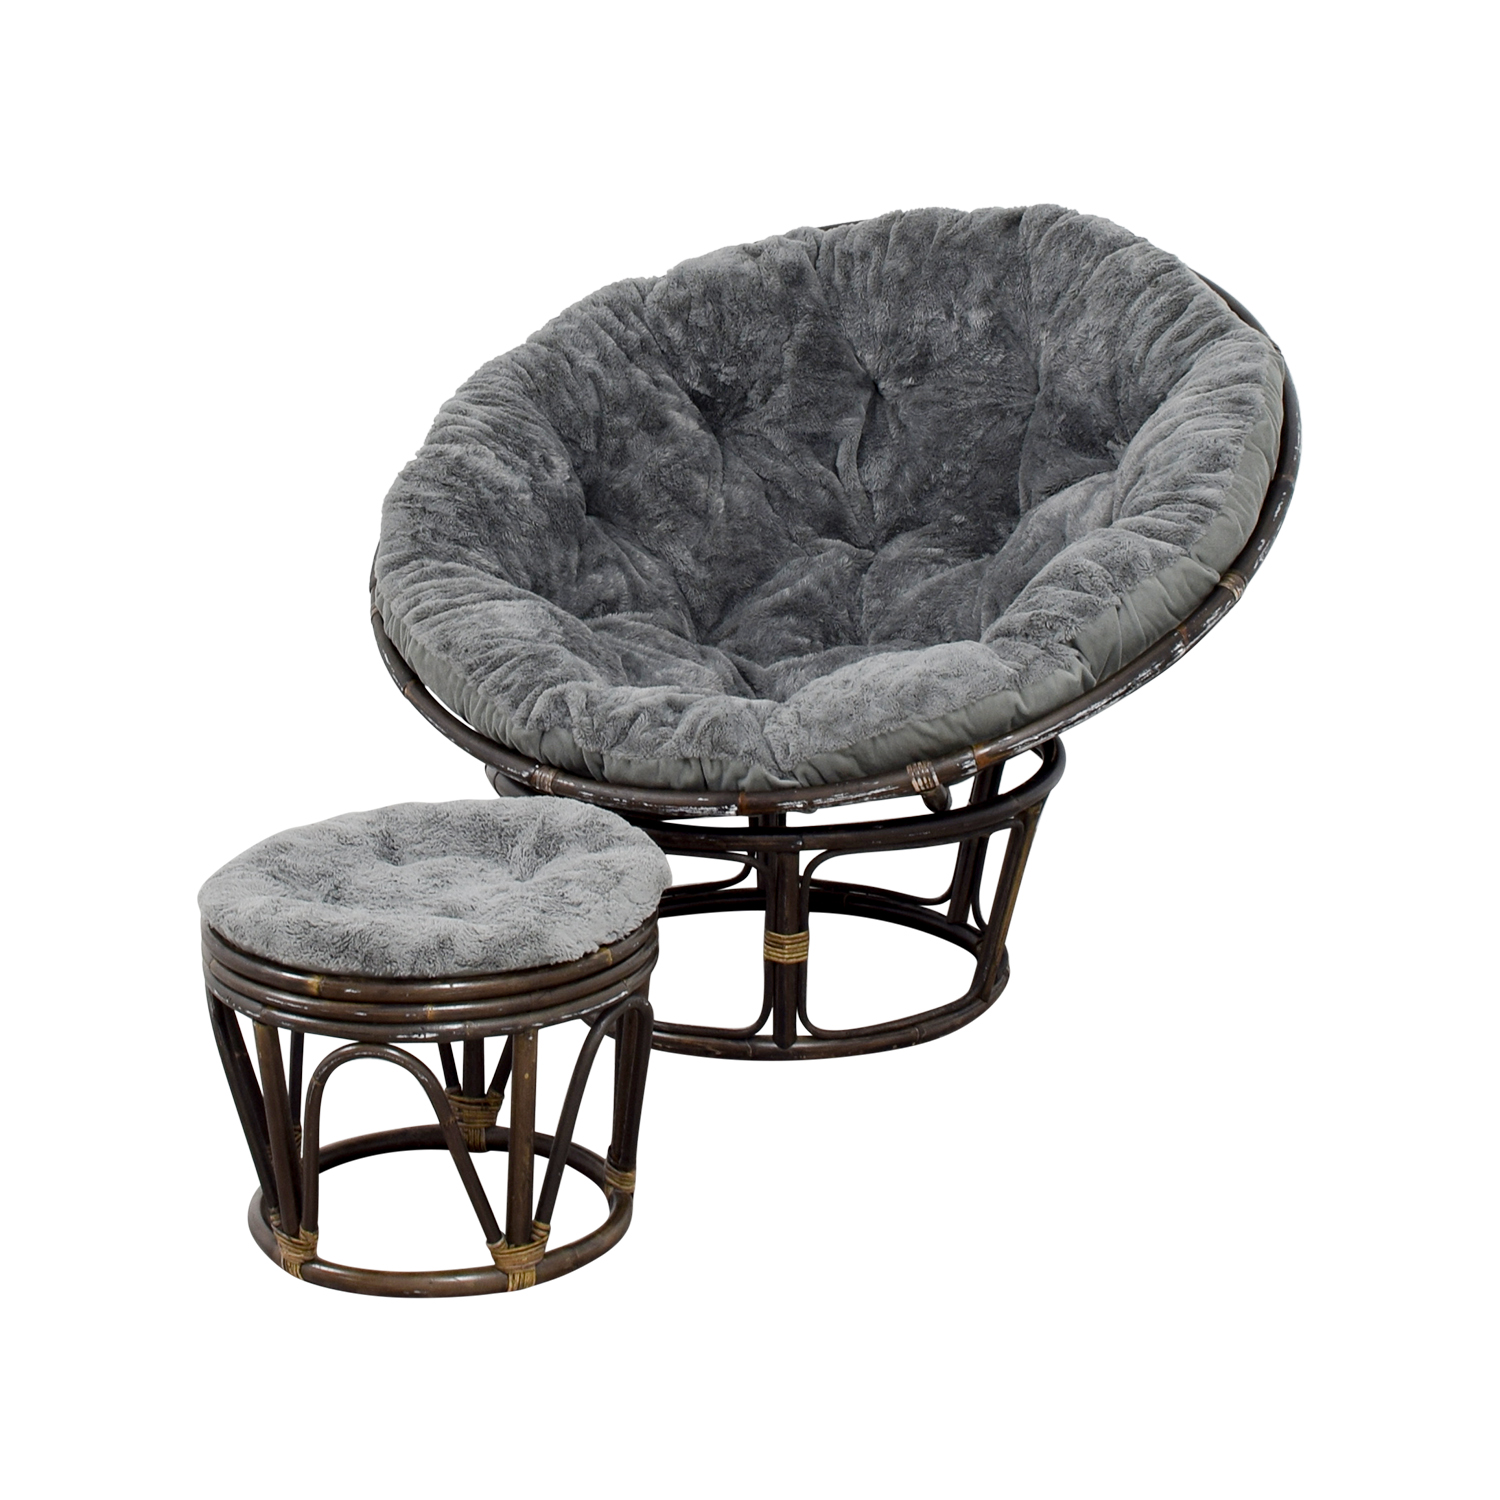 86 OFF  Pier 1 Pier 1 Papasan Chair with Stool  Chairs